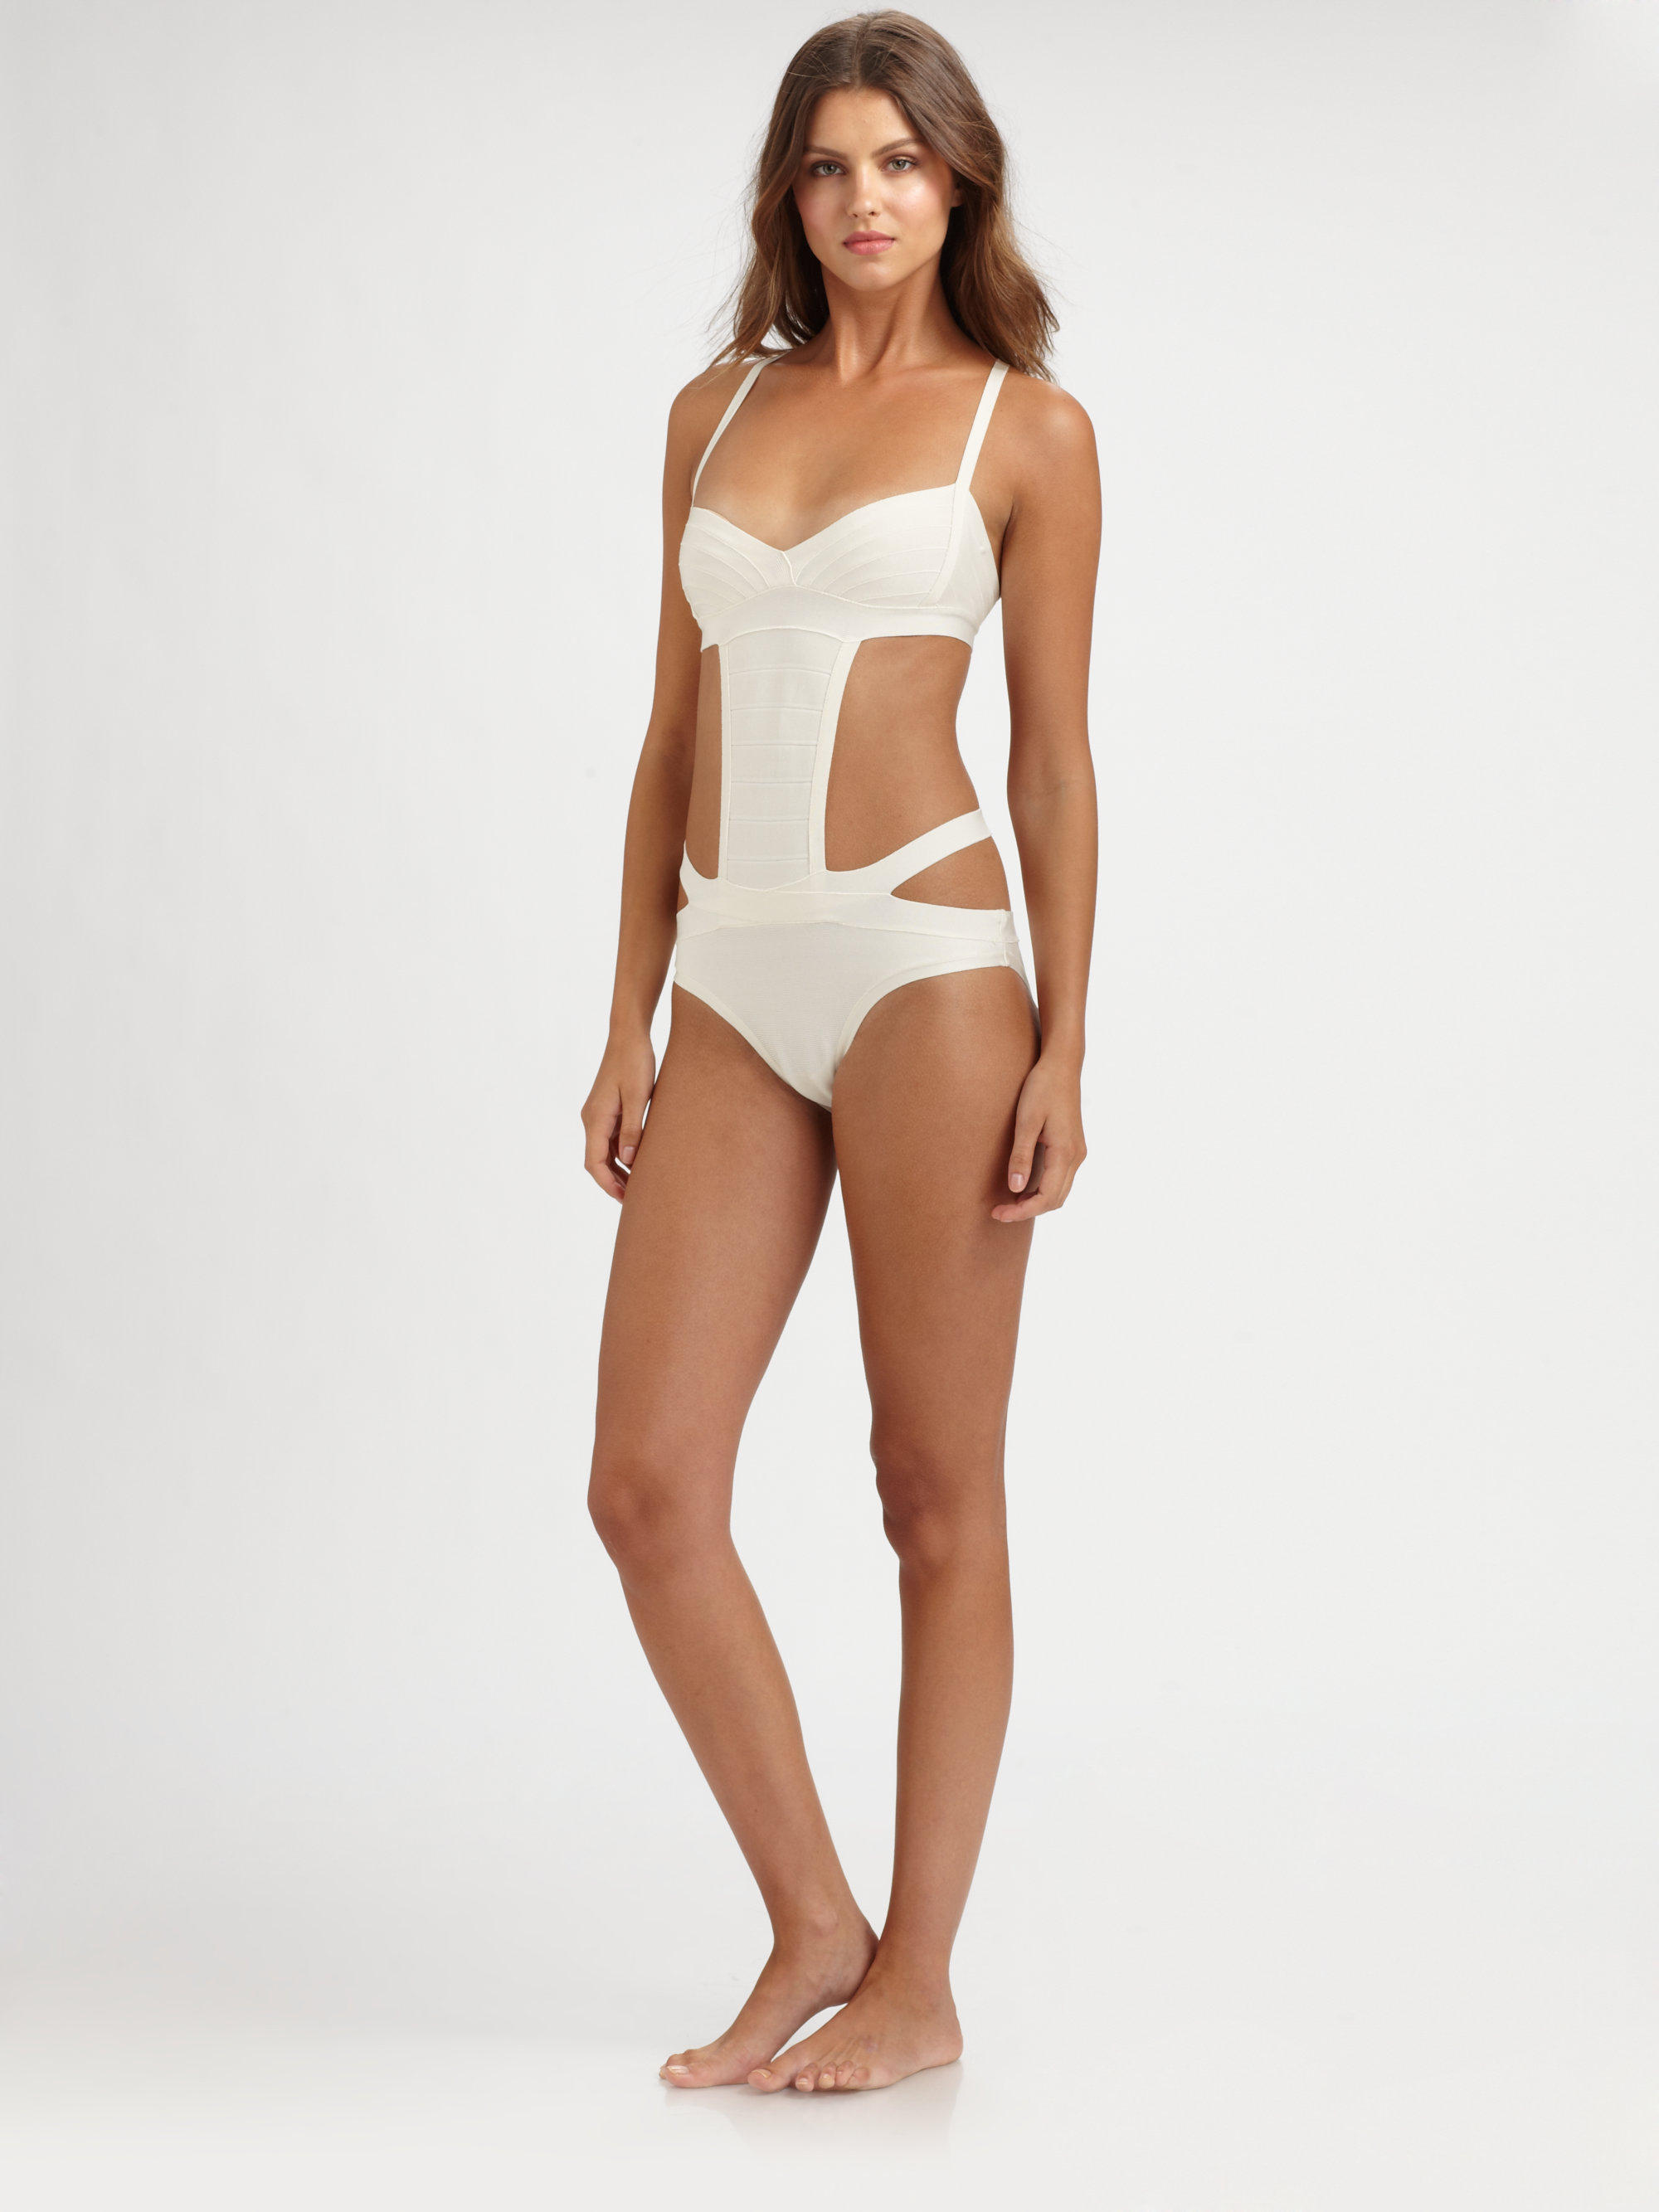 123fb2c9fdc43 Hervé Léger One Piece Strappy Cutout Swimsuit in White - Lyst